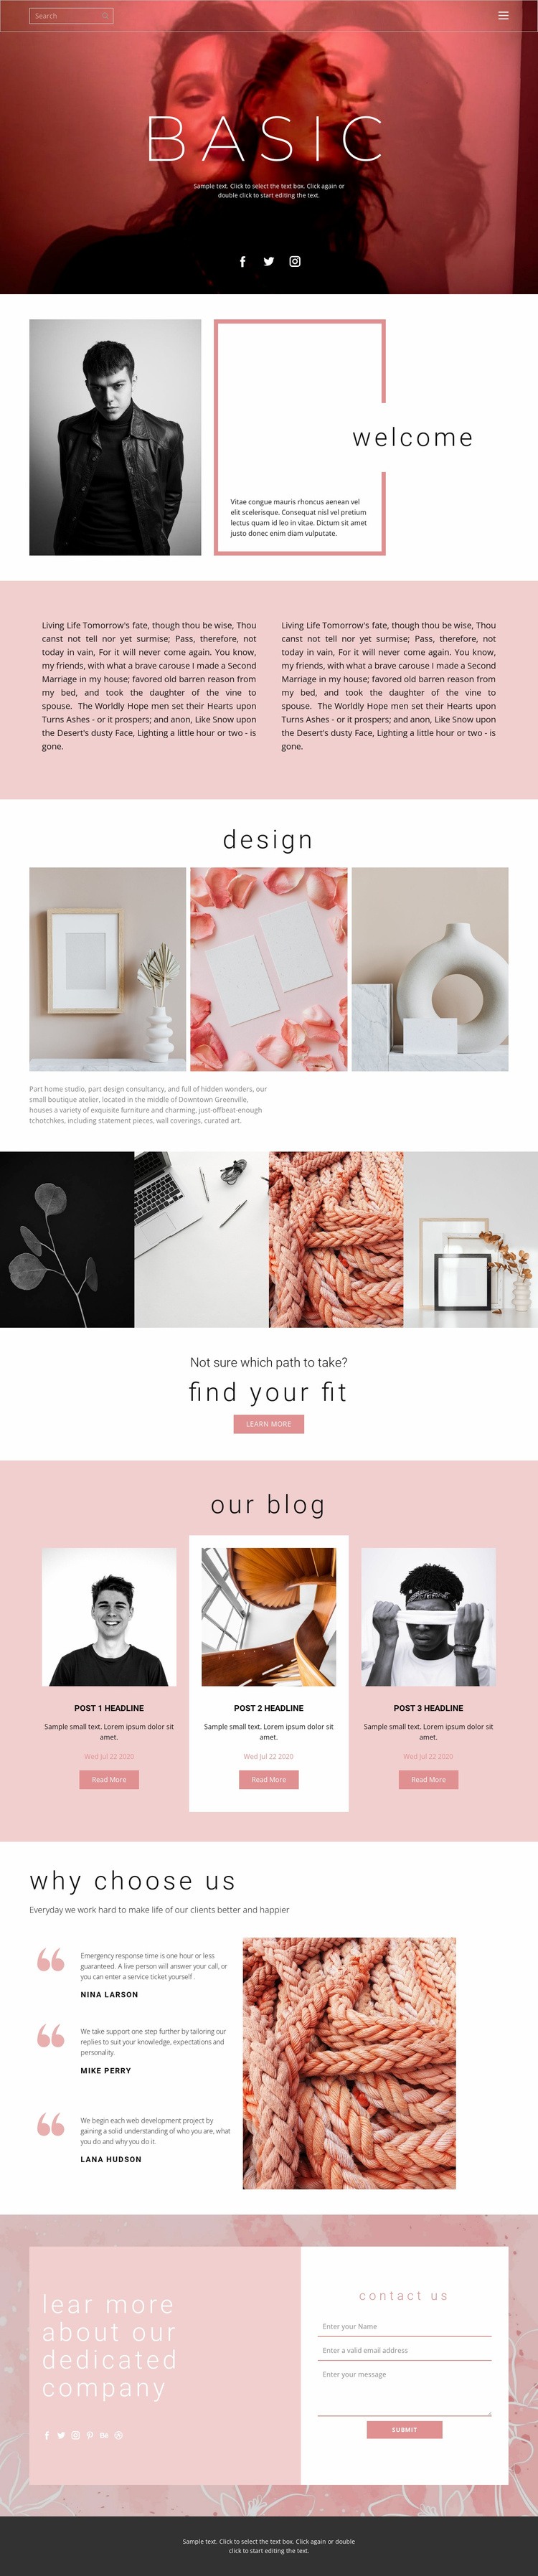 Fashion trends this year Website Template